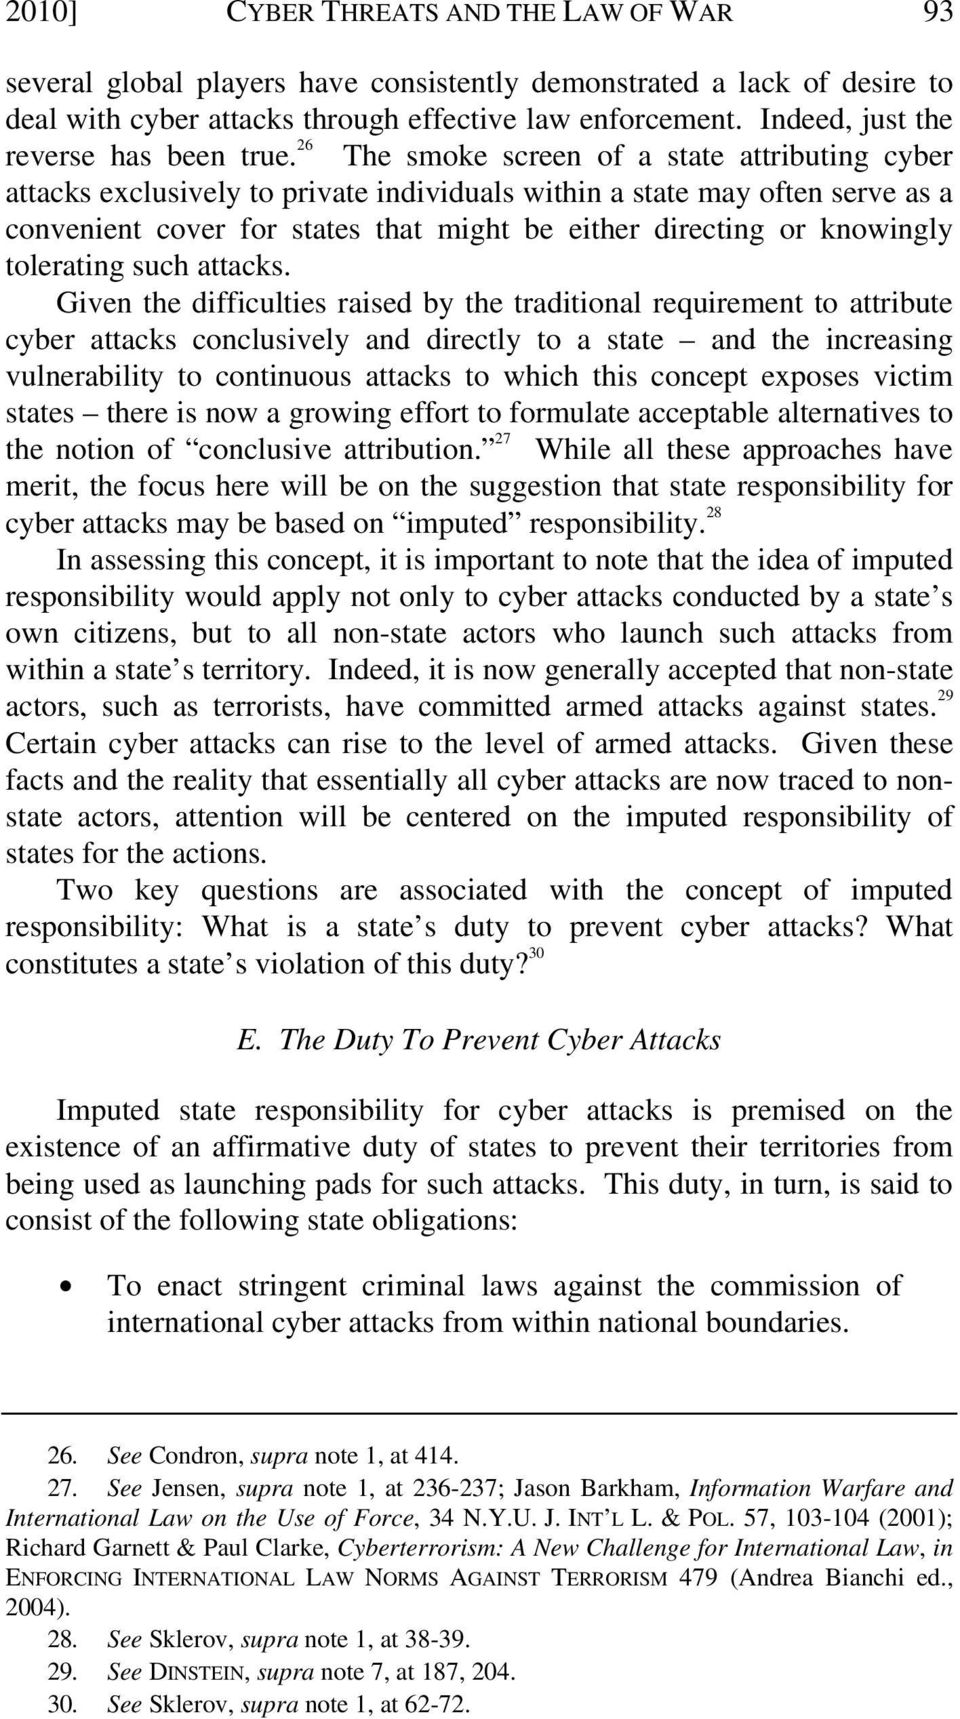 26 The smoke screen of a state attributing cyber attacks exclusively to private individuals within a state may often serve as a convenient cover for states that might be either directing or knowingly